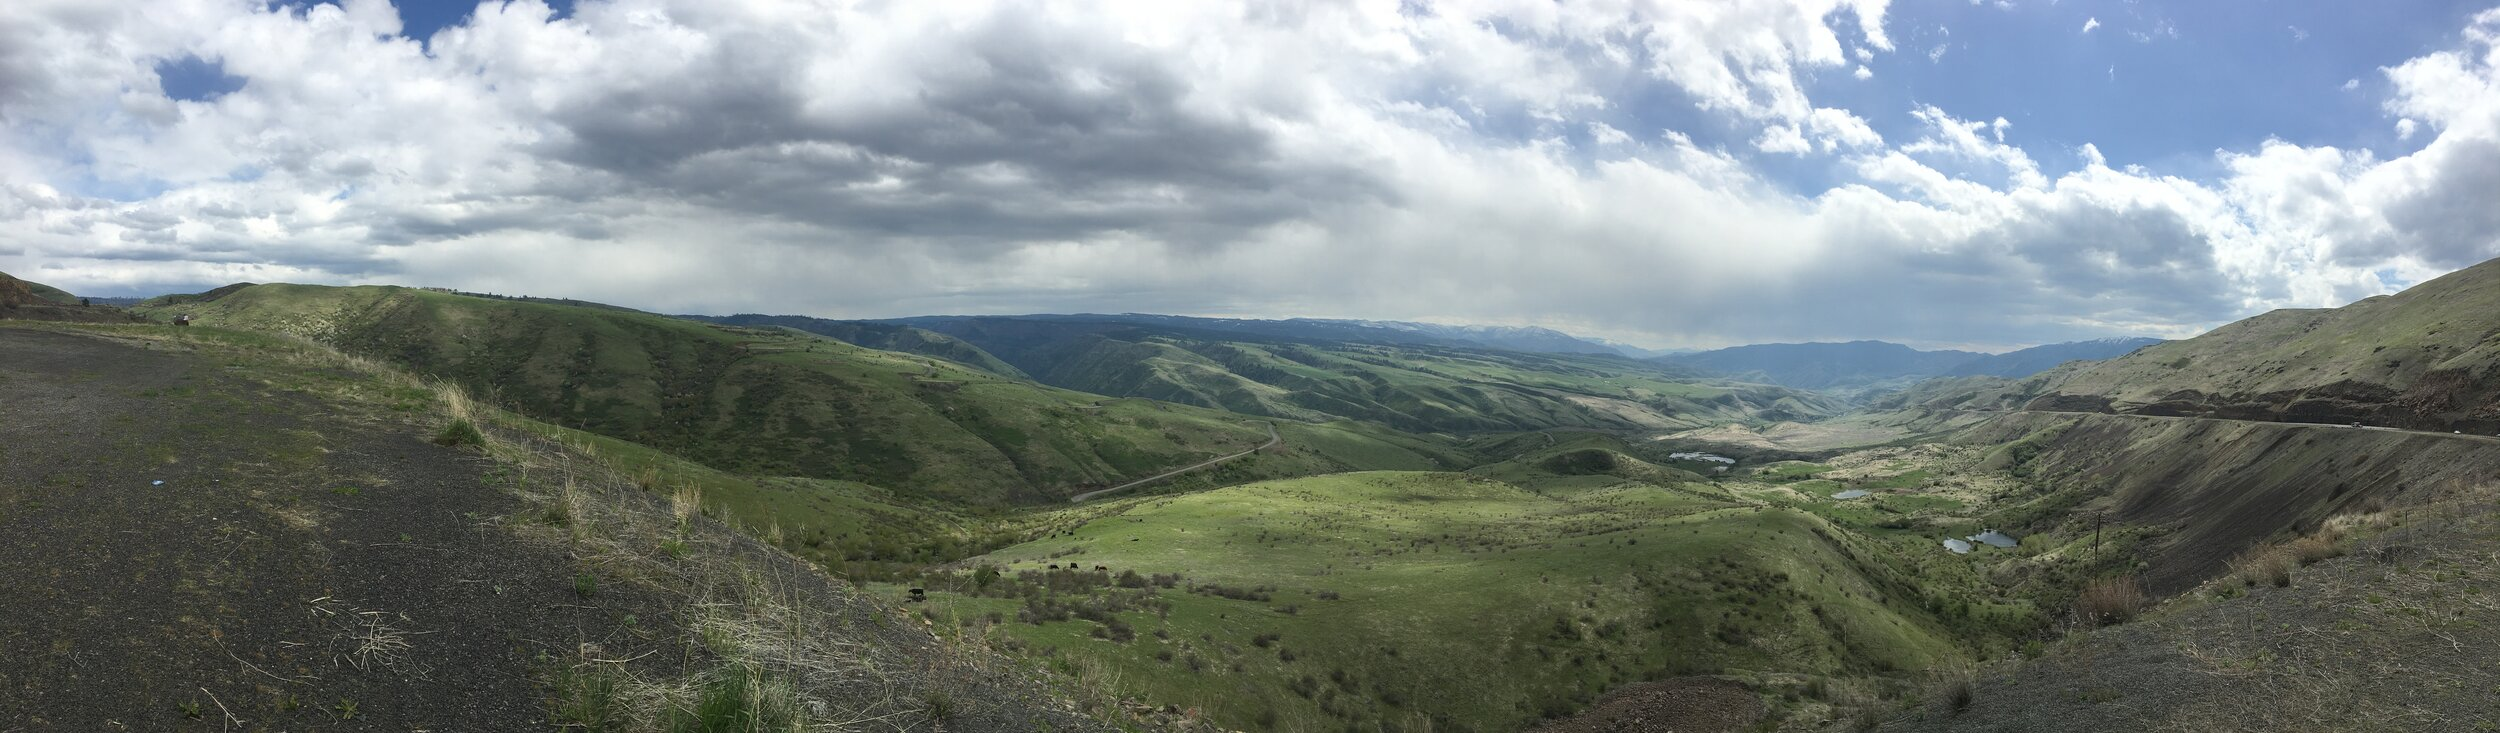 The ridgeline left of center is where the White Bird Grade is located.  This photo is taken from the new US-95 grade.  Even today some trucks still use the old road because of the steepness of the new road.